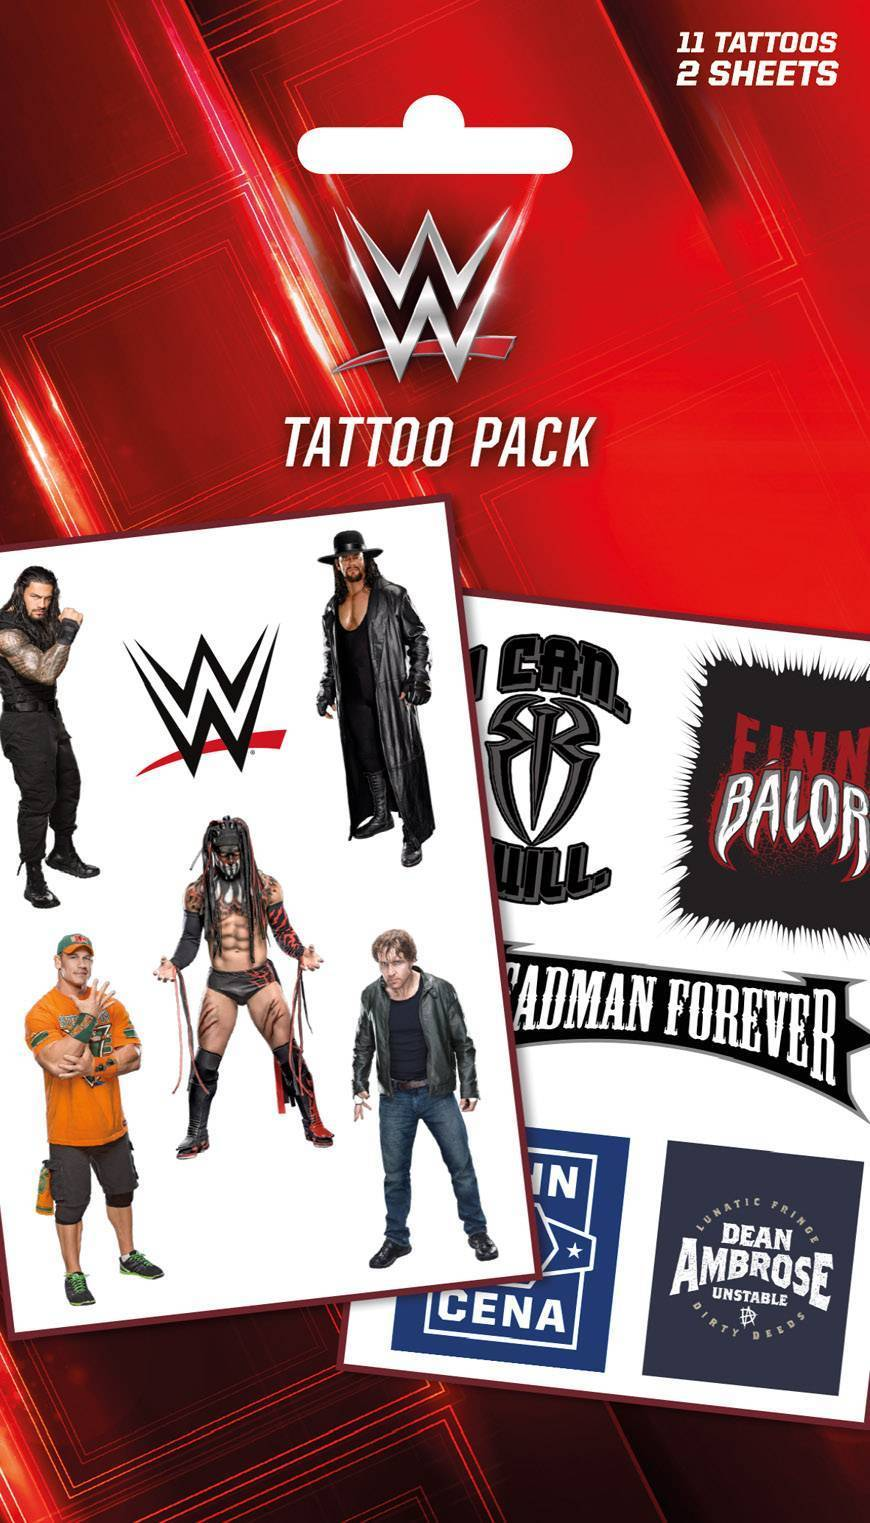 WWE Logos And Superstars Tattoo Pack